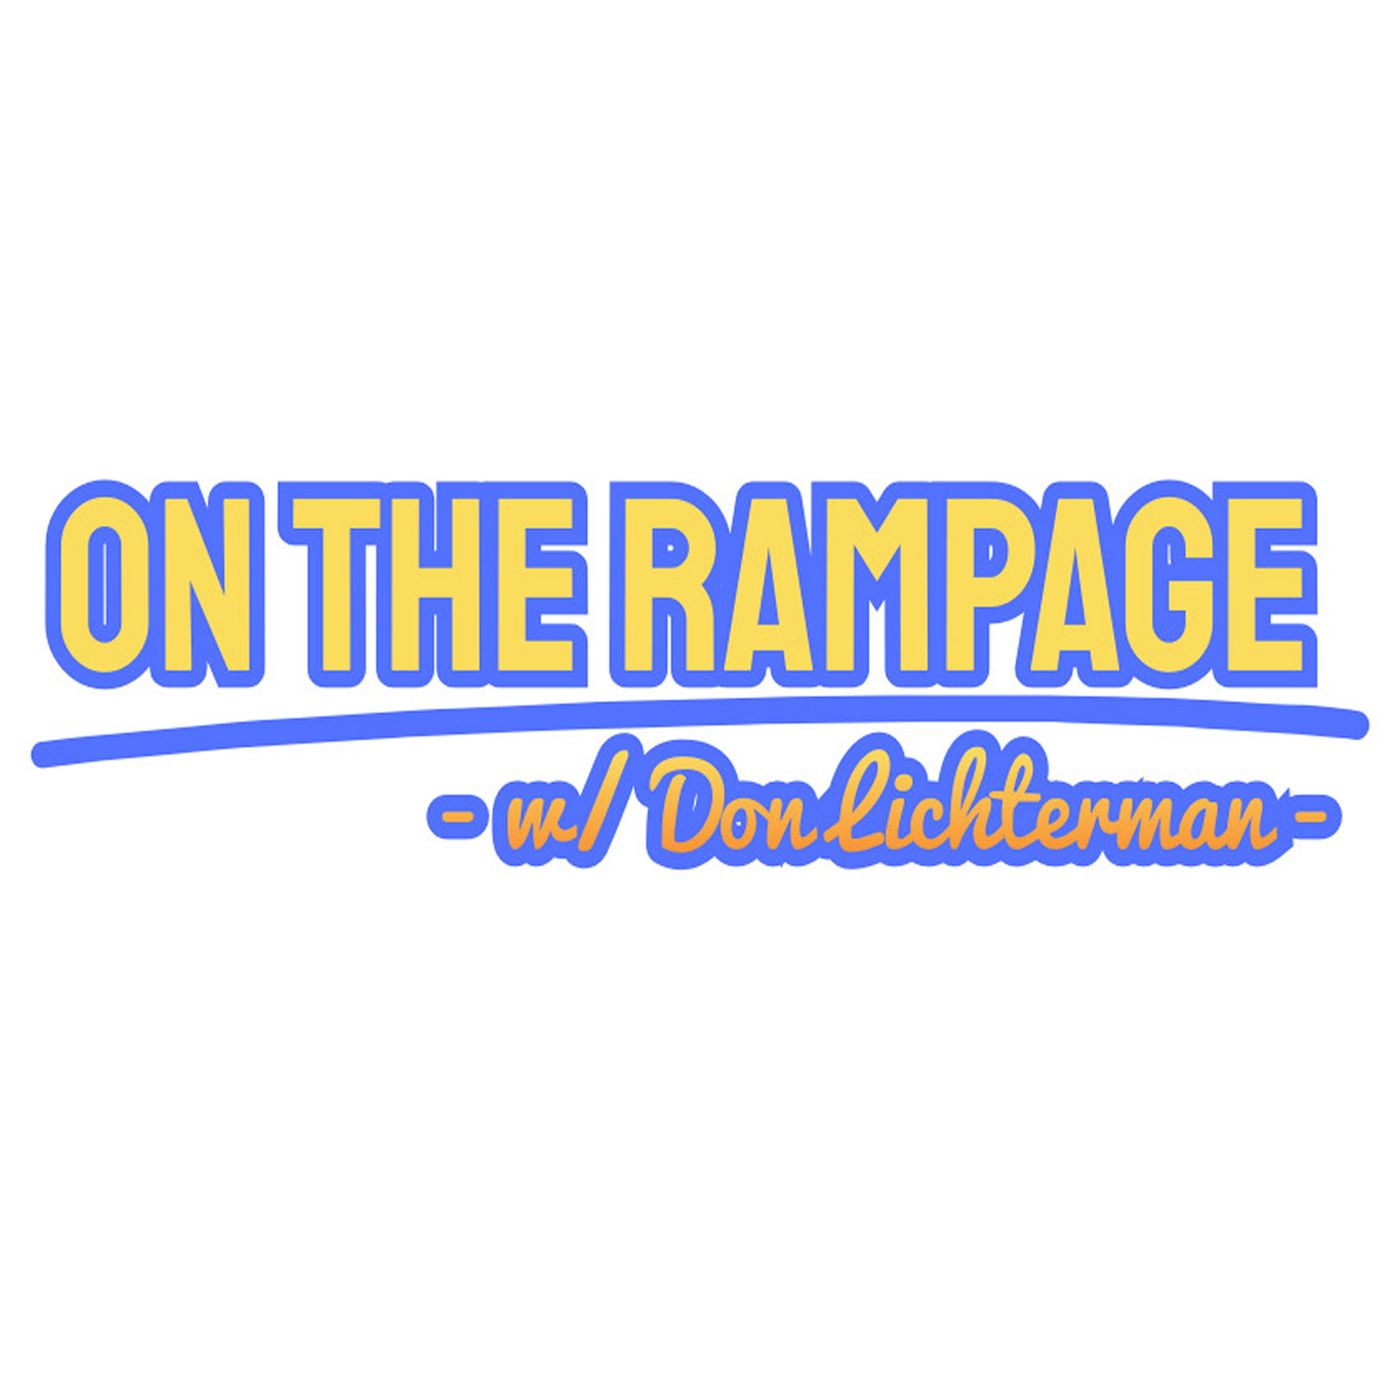 On The Rampage w/ Don Lichterman, Trey Anastasio, A Very Stable Genius, Katy Tur, Up, Down& Down...